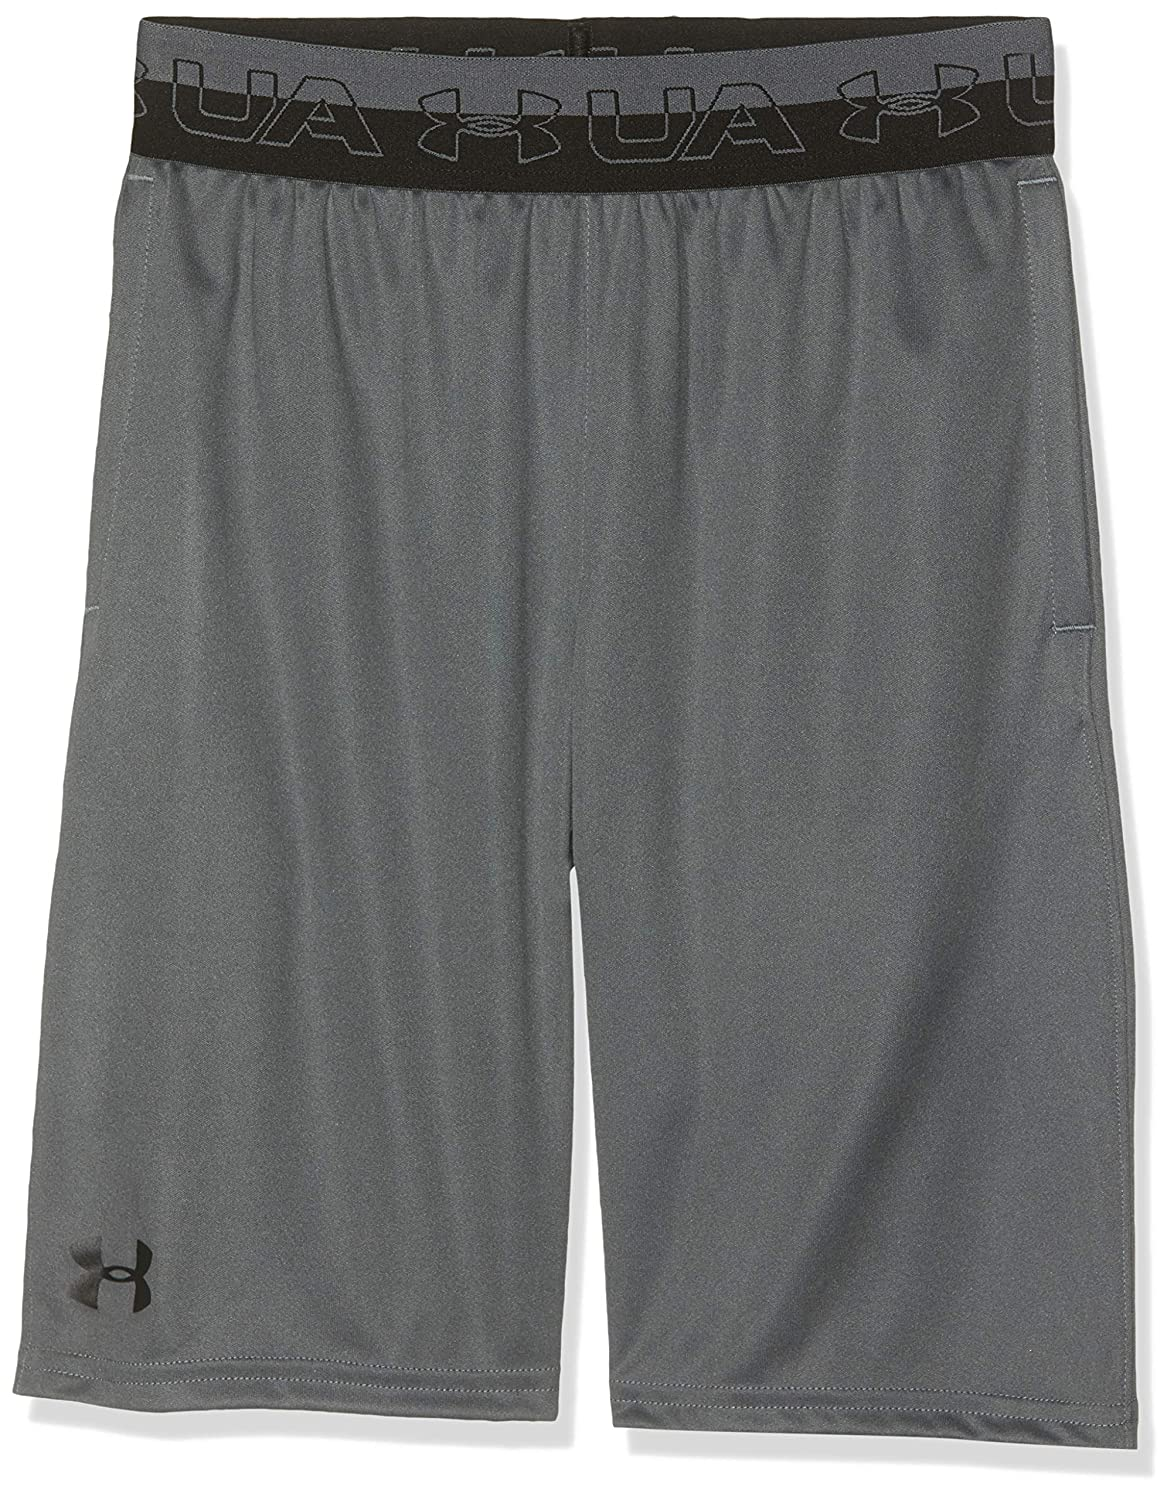 Under Armour Prototype Elastic Shorts